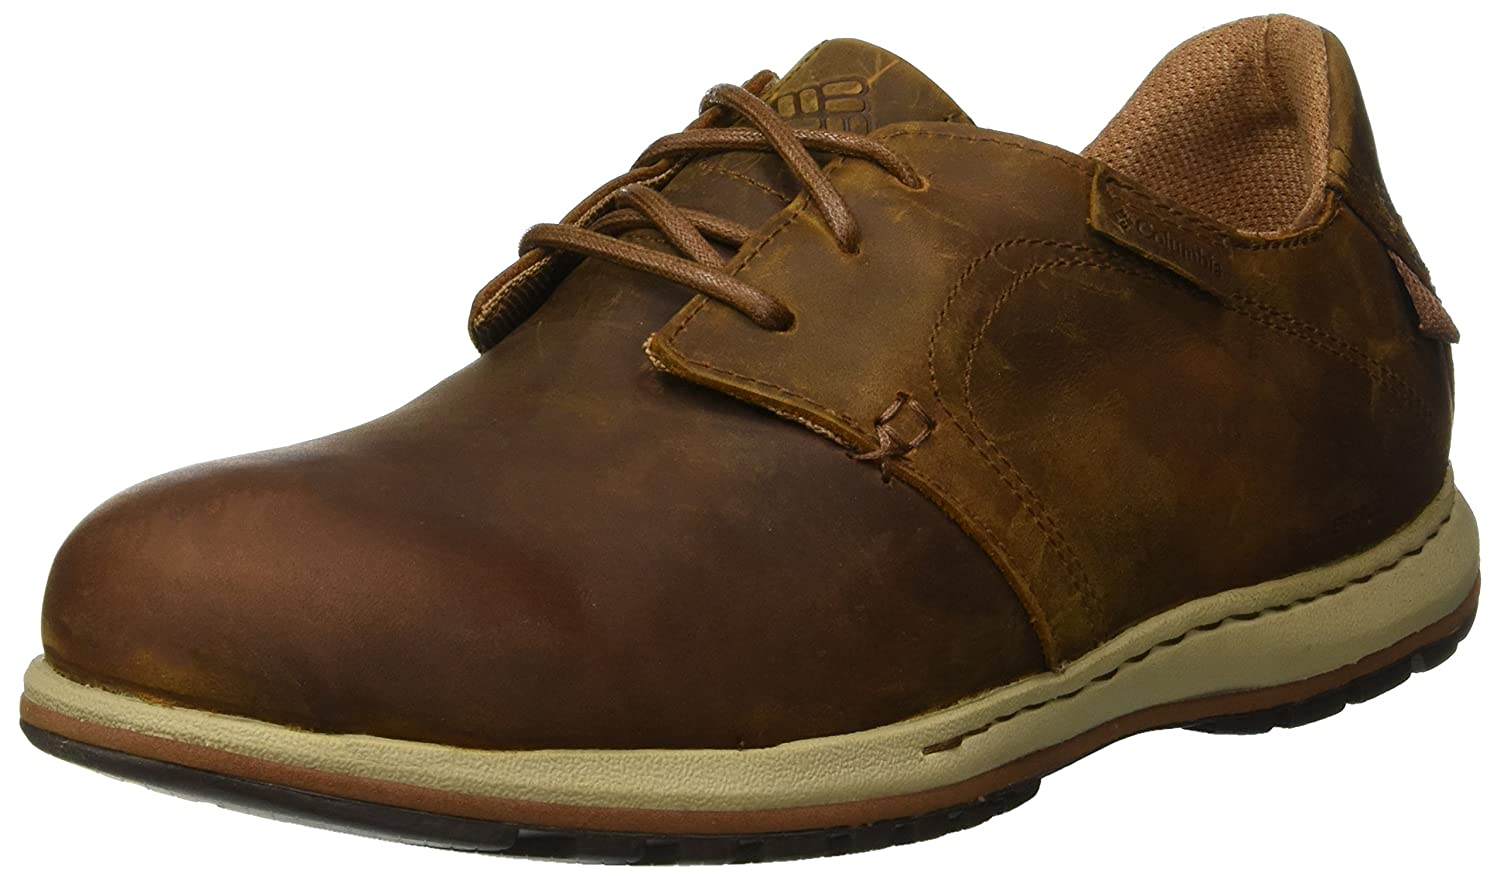 TALLA 40 EU. Columbia Davenport Waterproof Leather, Oxford para Hombre